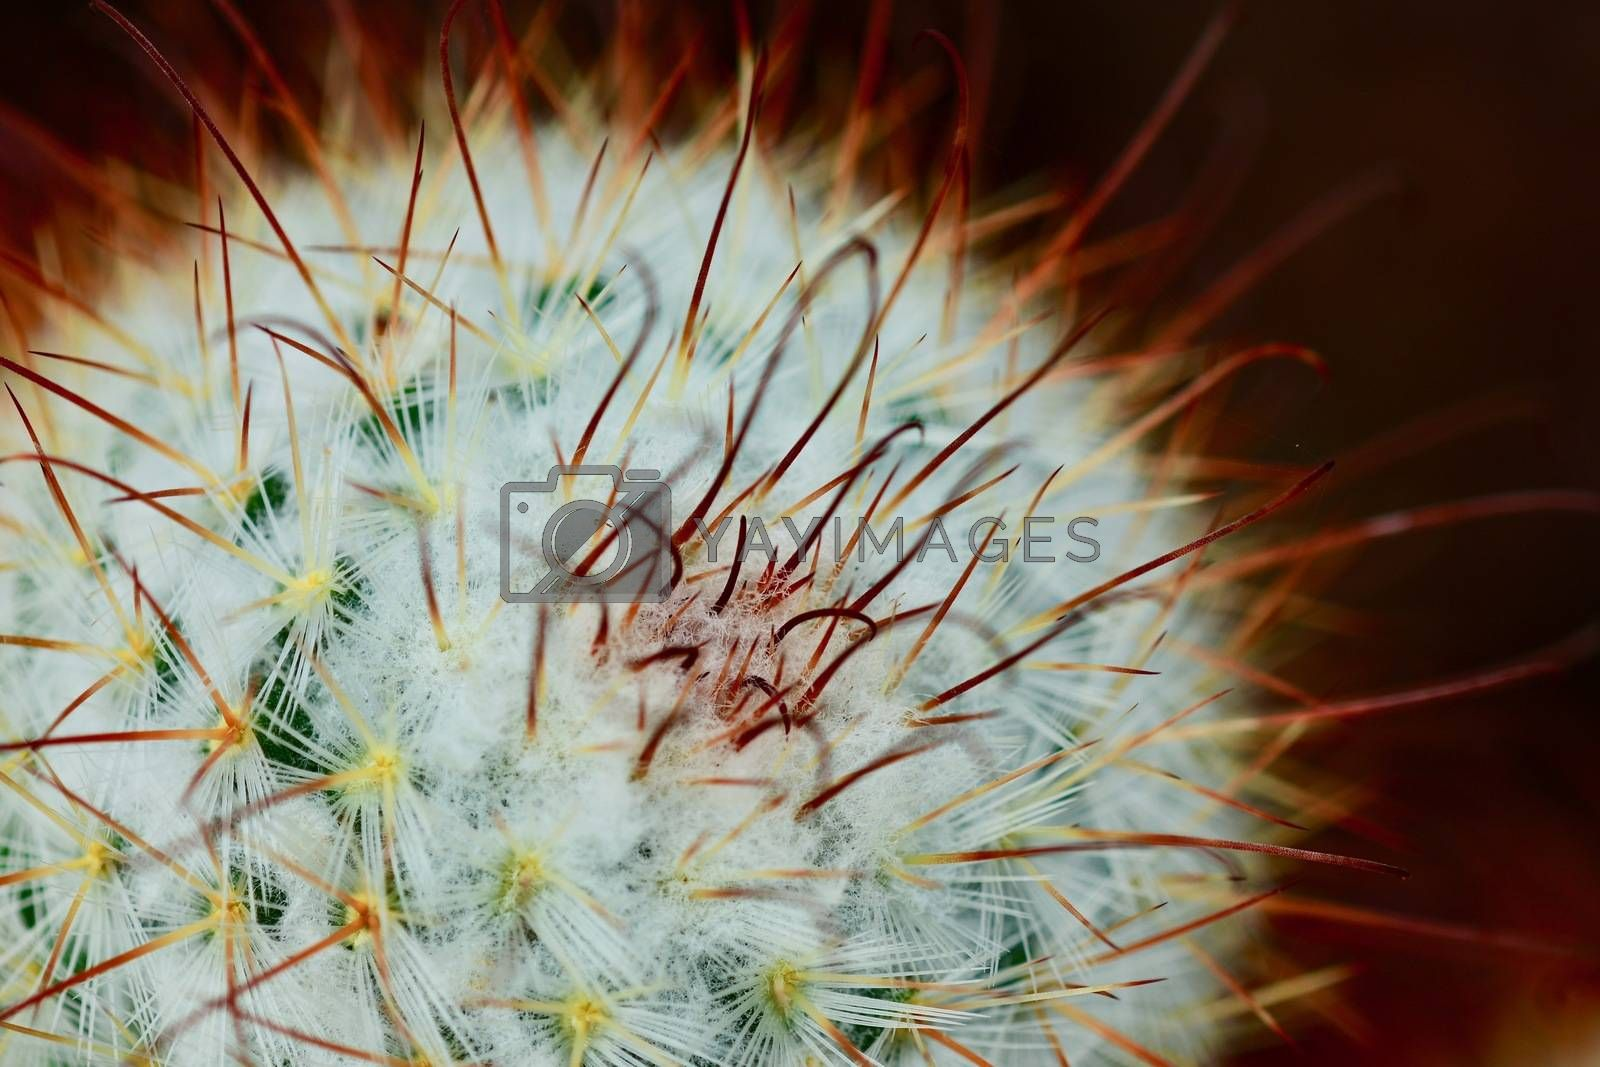 Cacti produce spines, always from areoles, which are structures unique to cacti. Areoles typically appear as woolly or hairy areas on the stems from which spines emerge.